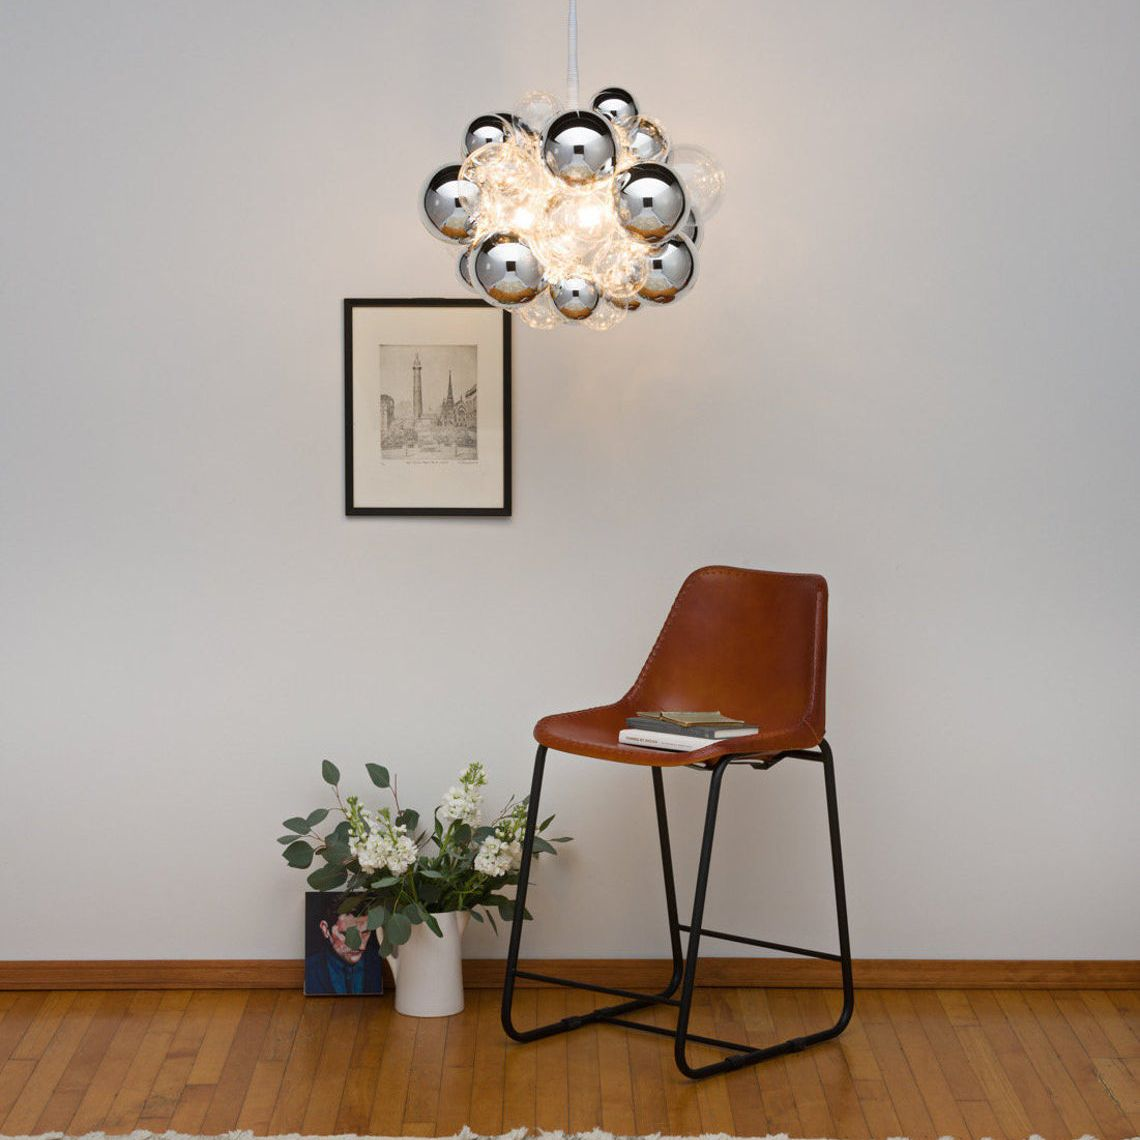 Chrome 31 Bubble Chandelier hangs above a brown chair